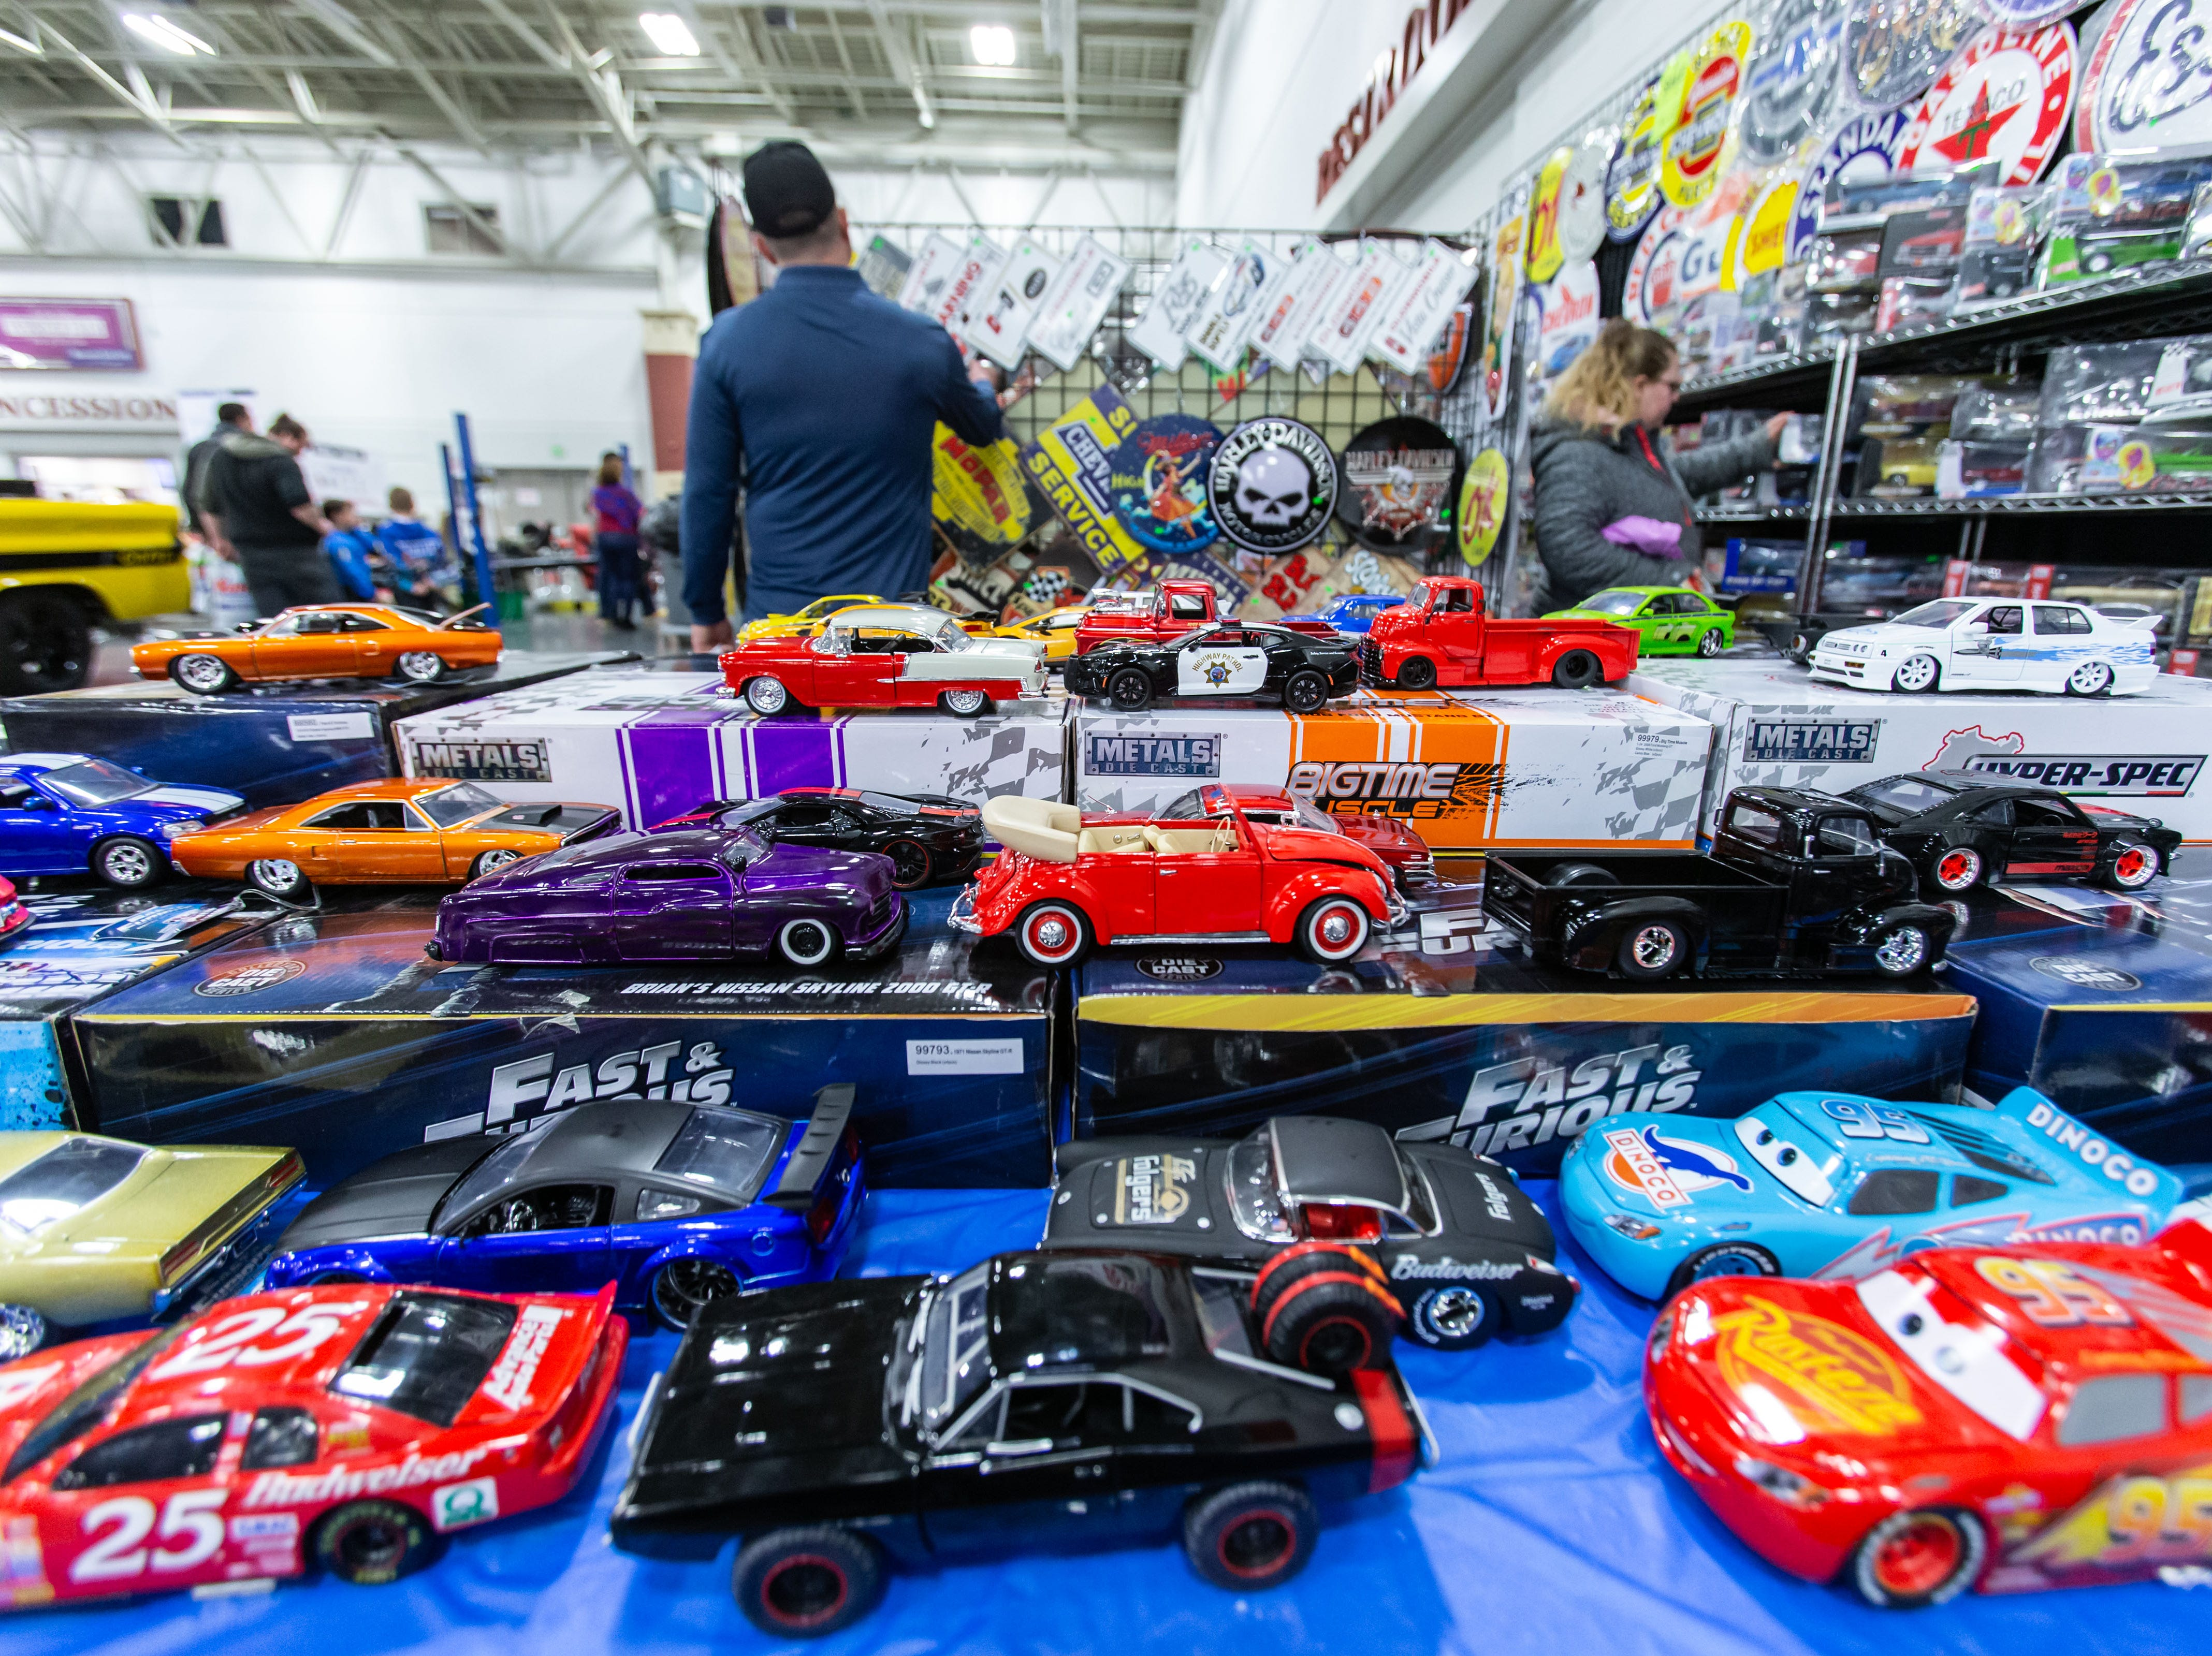 Visitors browse a wide variety of model cars and signage offered by Model Empire of West Allis during the 57th annual O'Reilly Auto Parts World of Wheels at State Fair Park in West Allis on Saturday, Feb. 23, 2019. The event features over 300 vehicles, celebrity appearances, vendors, a charity auction and more.